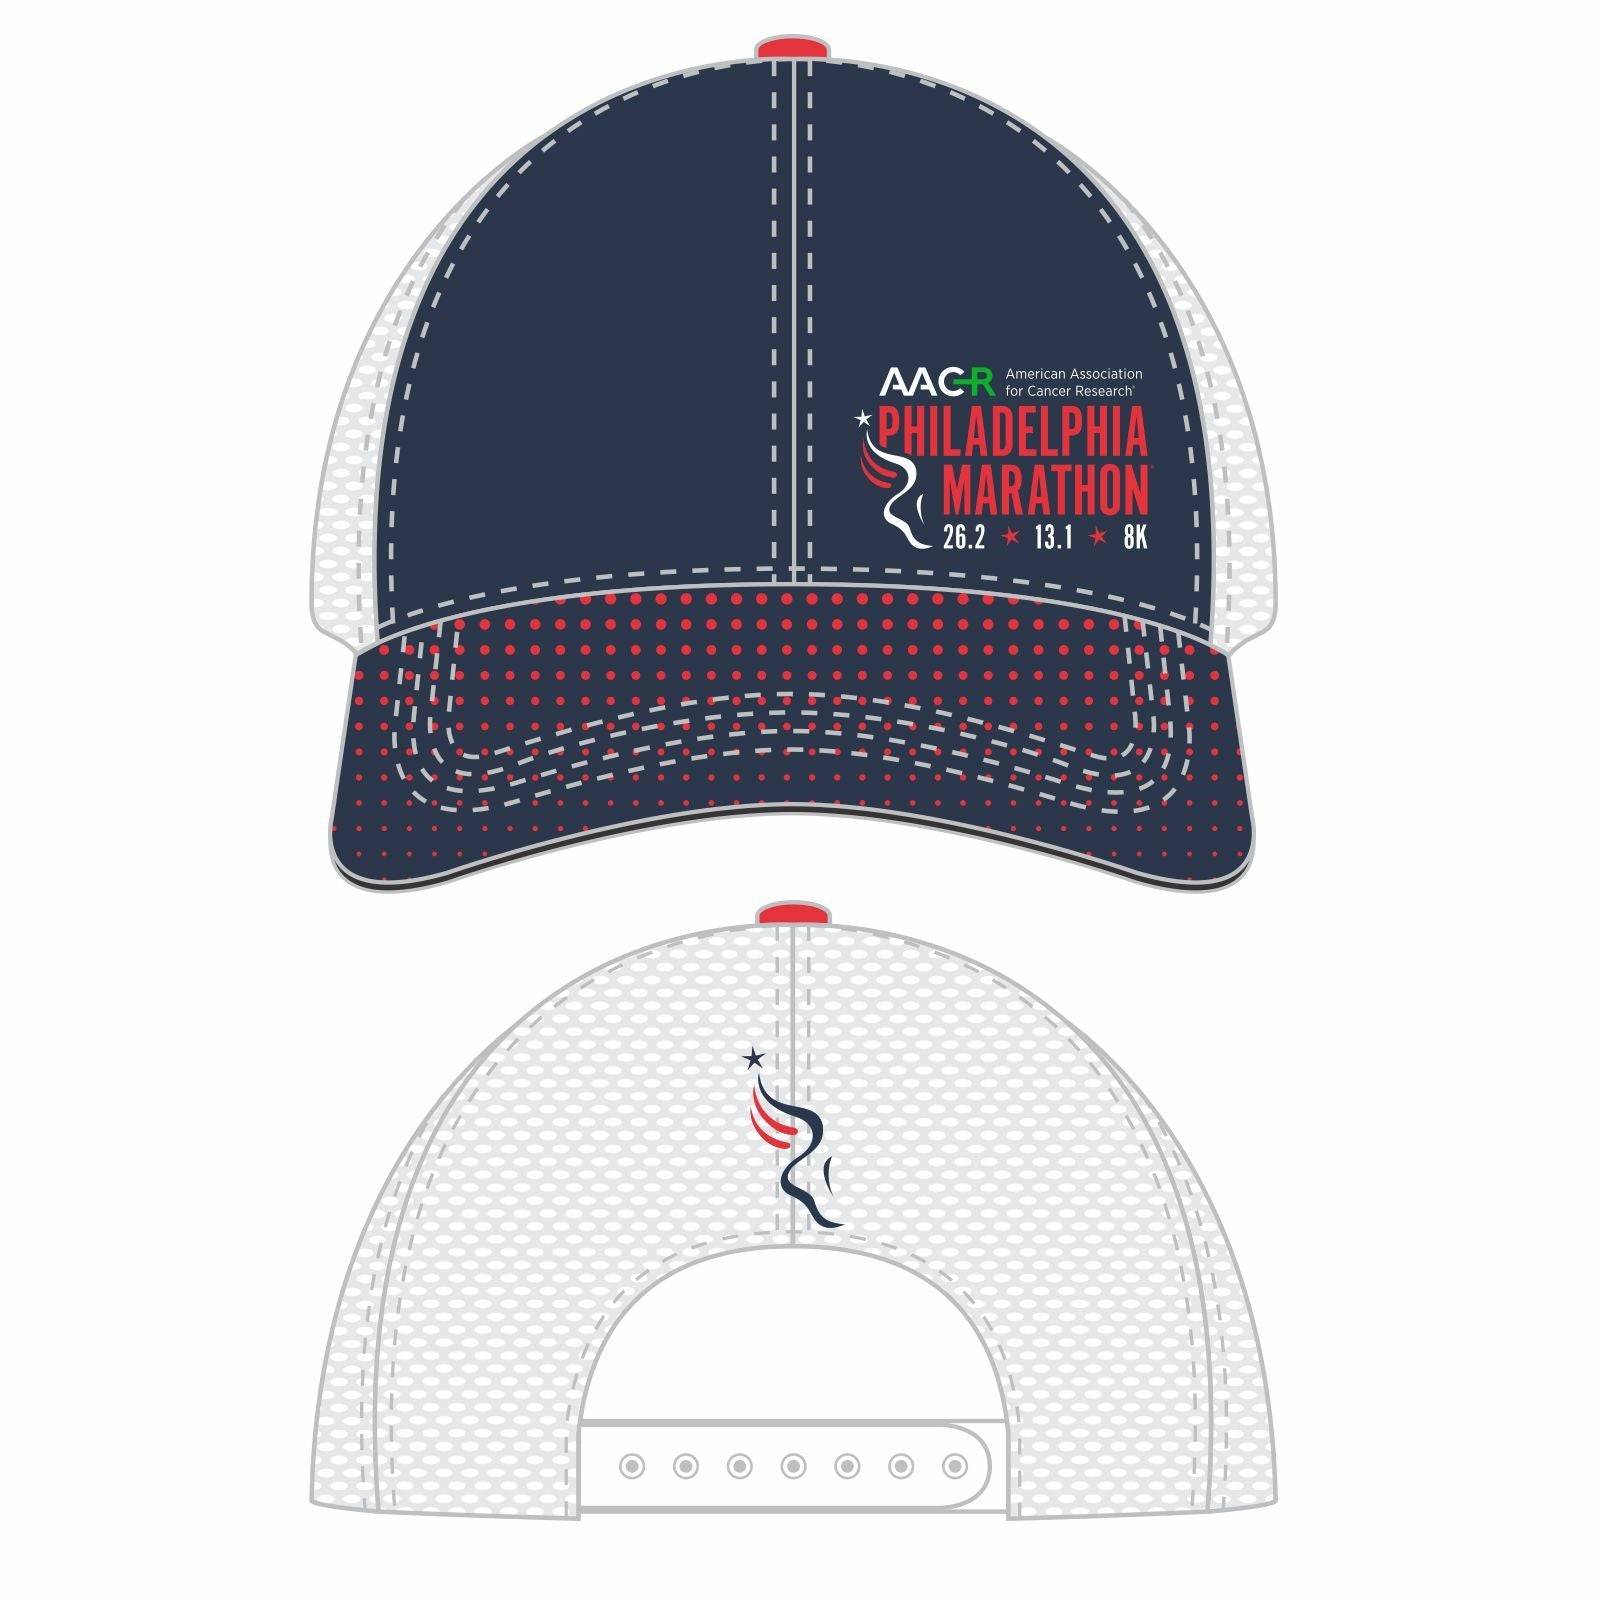 Philadelphia Marathon: 'Full Marathon' Relaxed Fit Tech Trucker - Navy